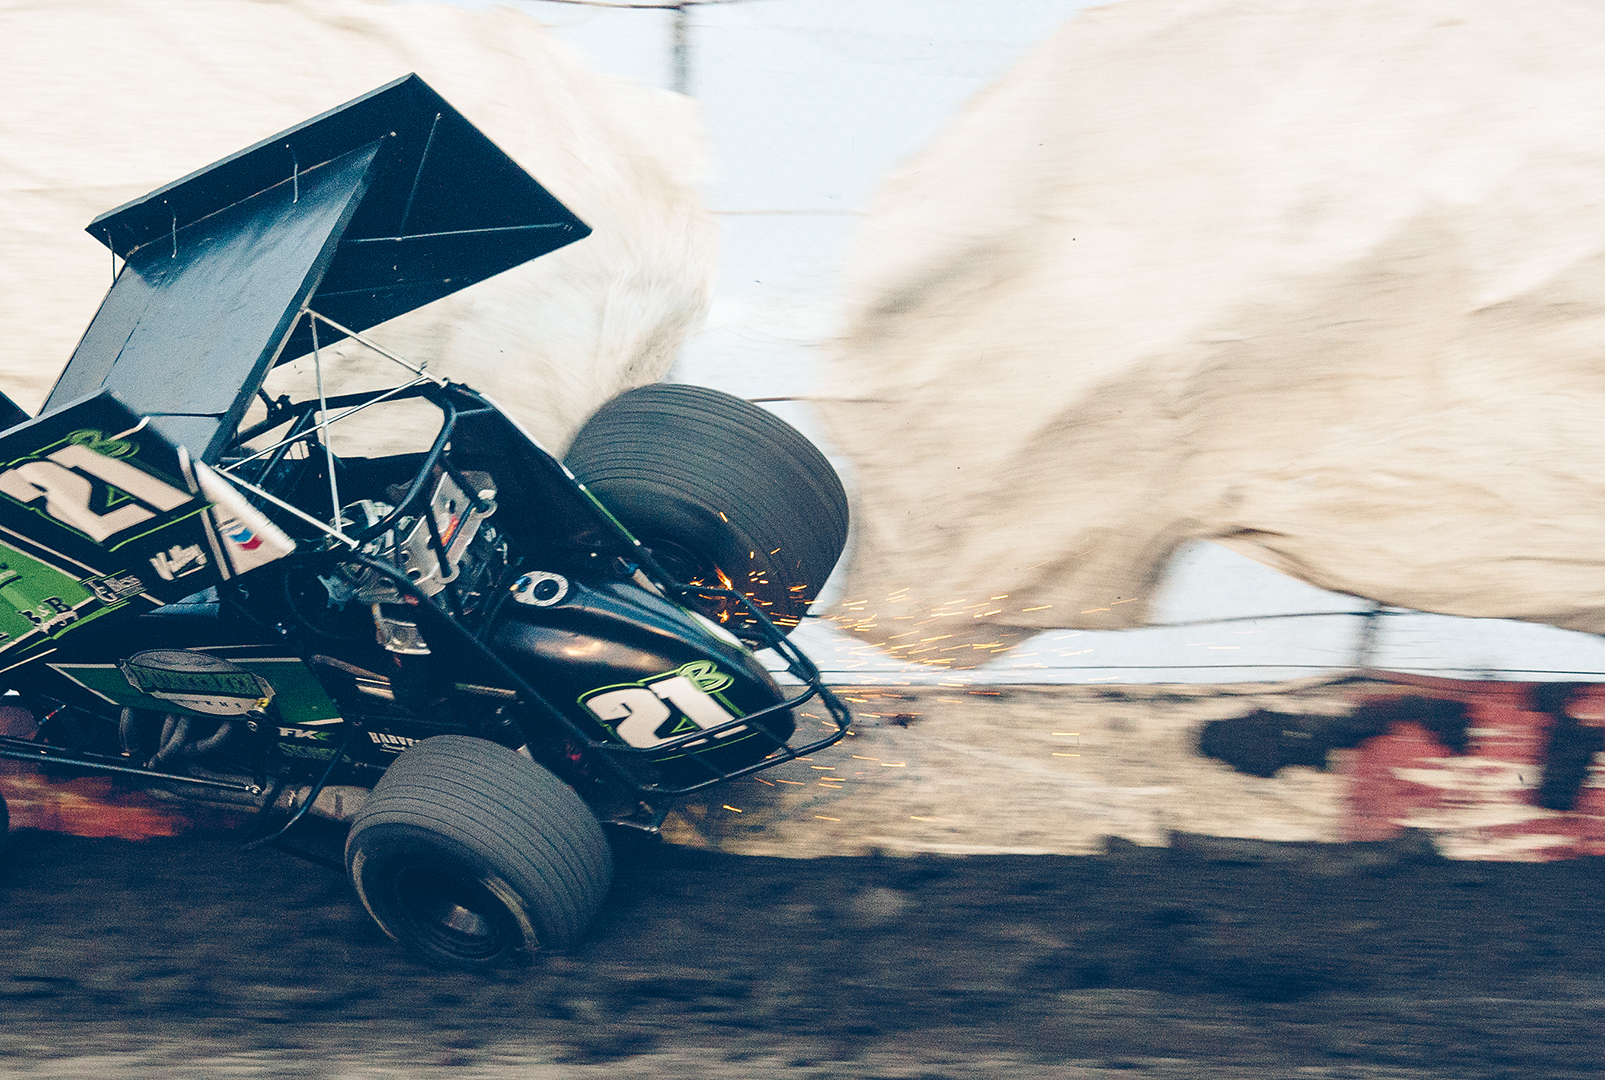 Dylan Black jumps over the ragged edge at Tulare.